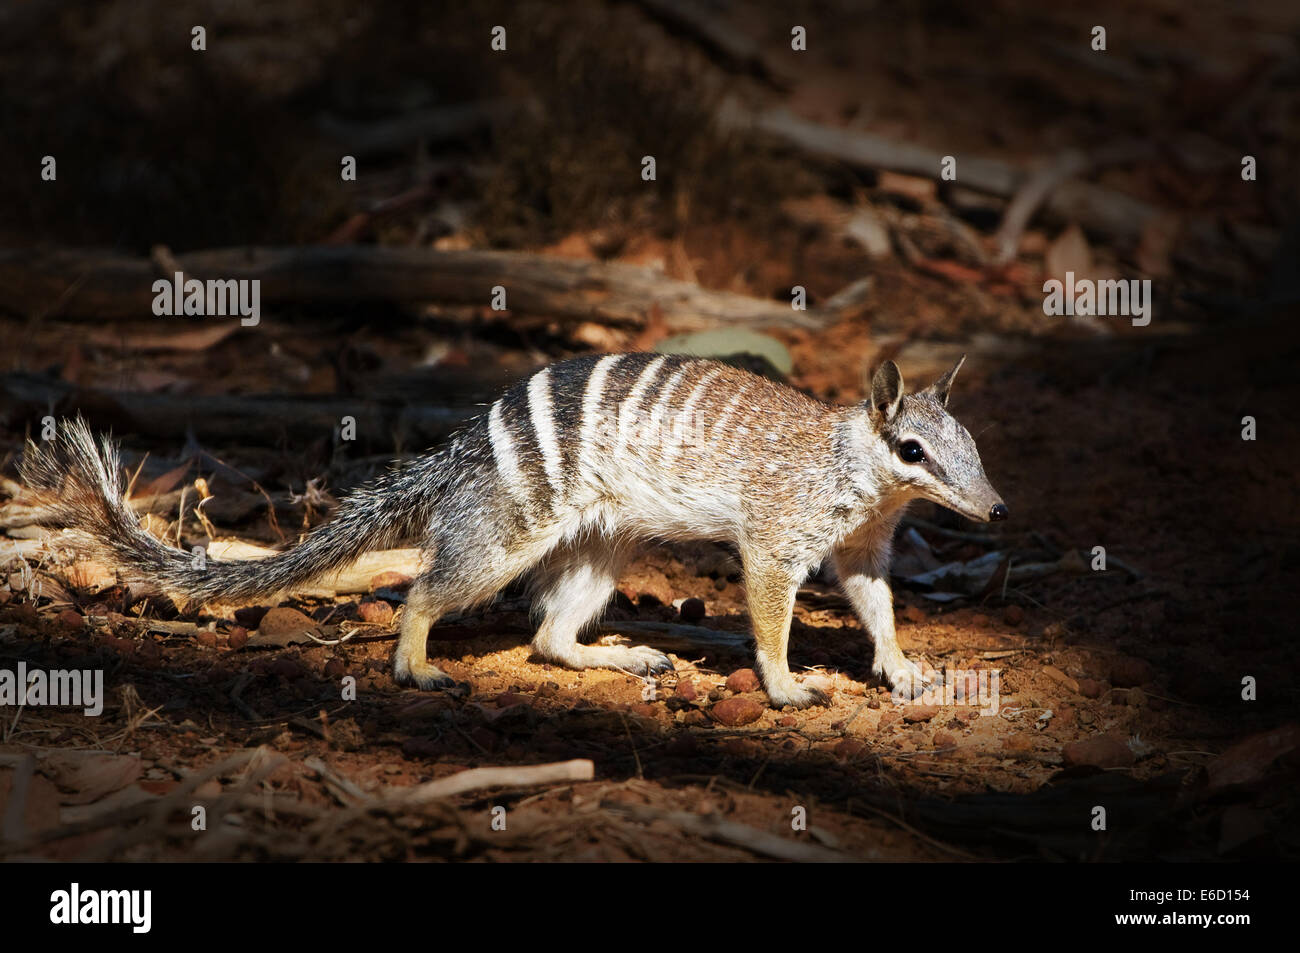 Numbat in a light beam foraging on the ground of the forest. Stock Photo